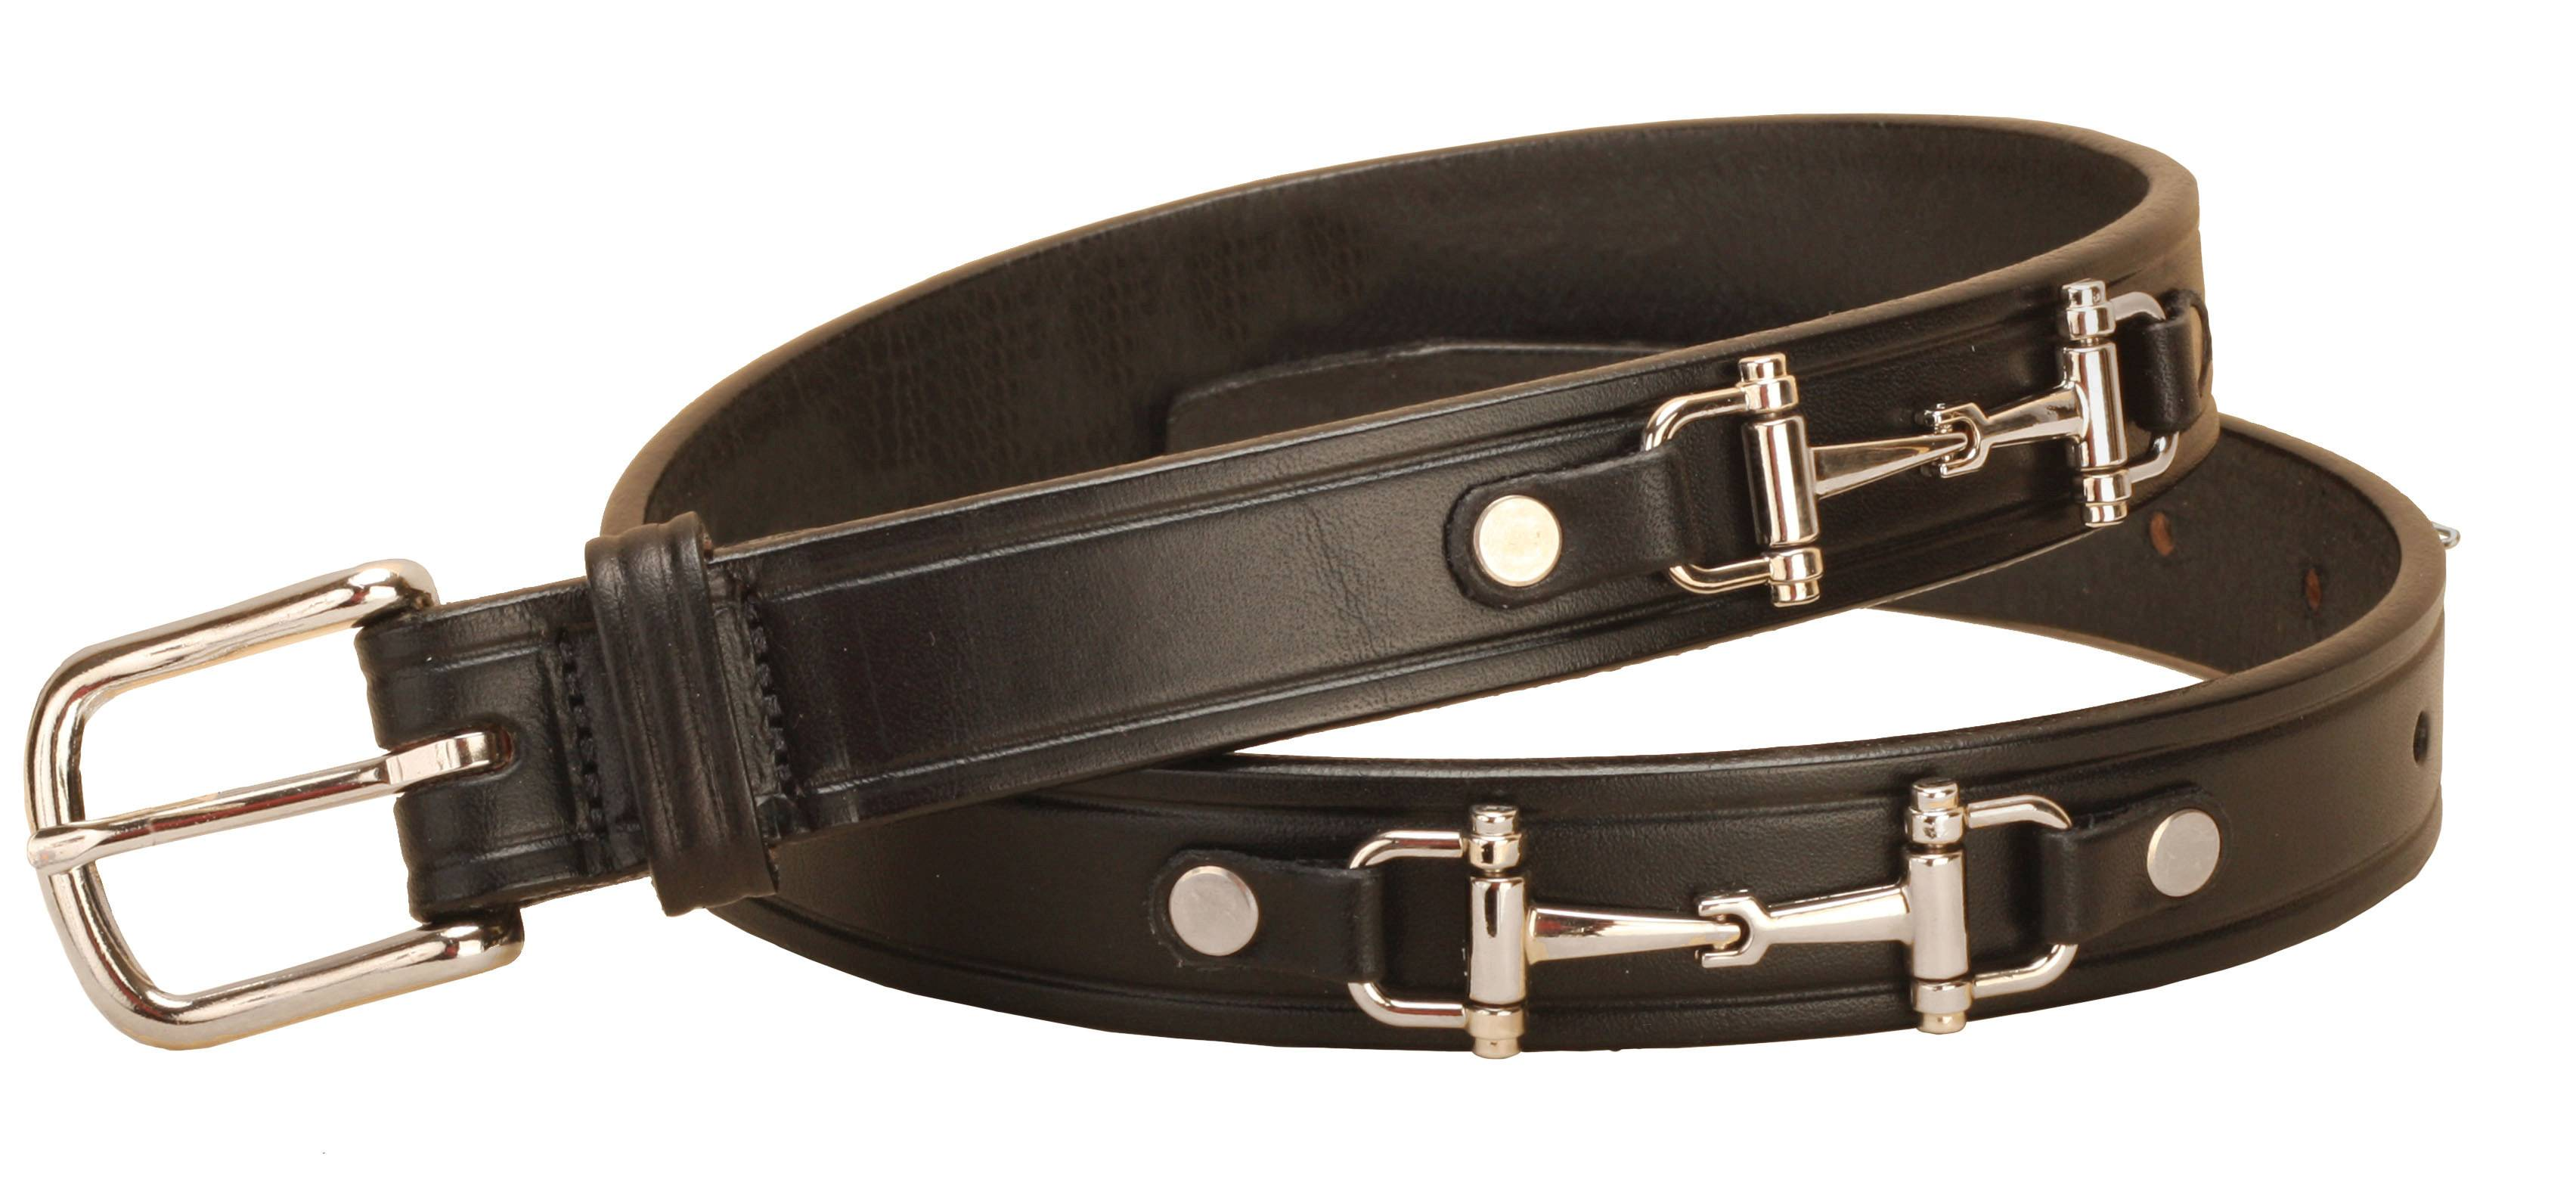 Tory Leather Snaffle Bit Belt